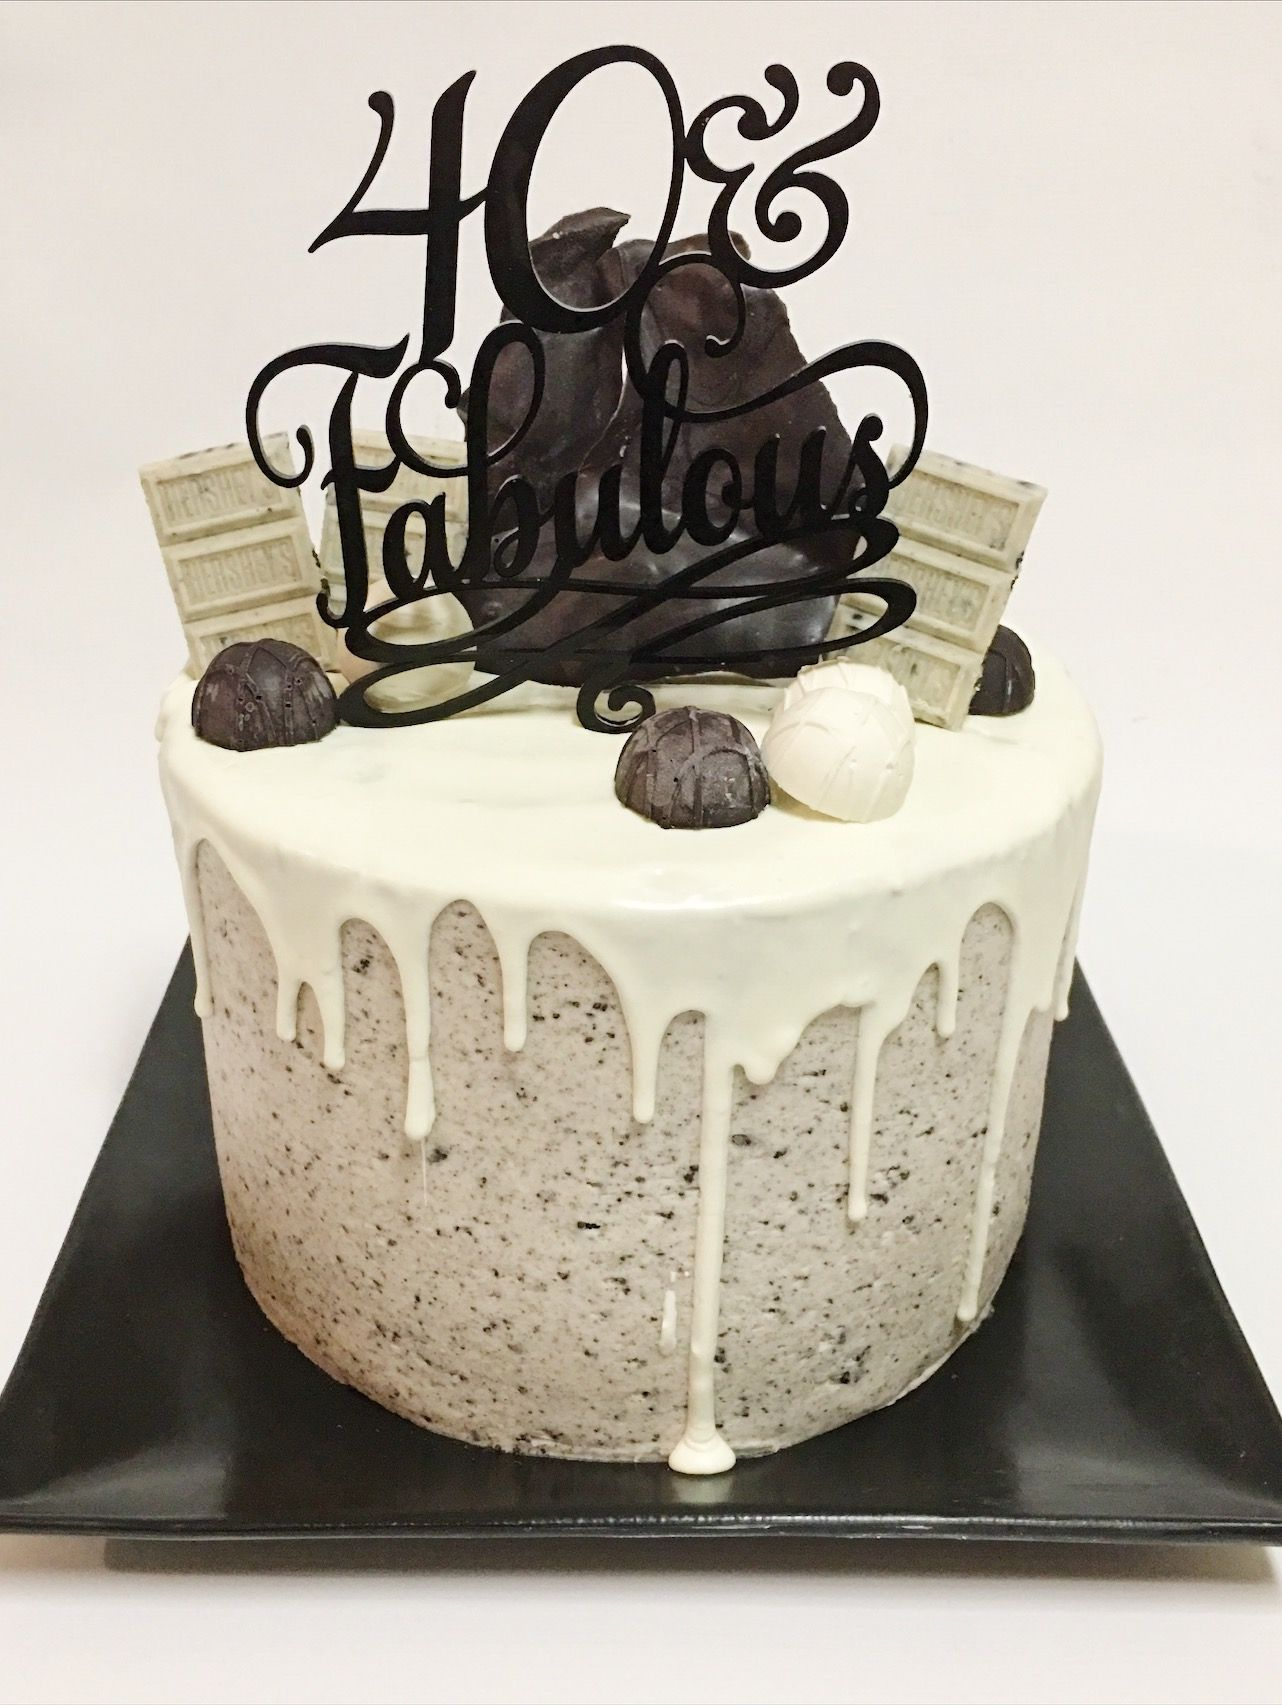 Custom Milestone Birthday Cake By A Little Slice Of Heaven Bakery In Atlanta GA